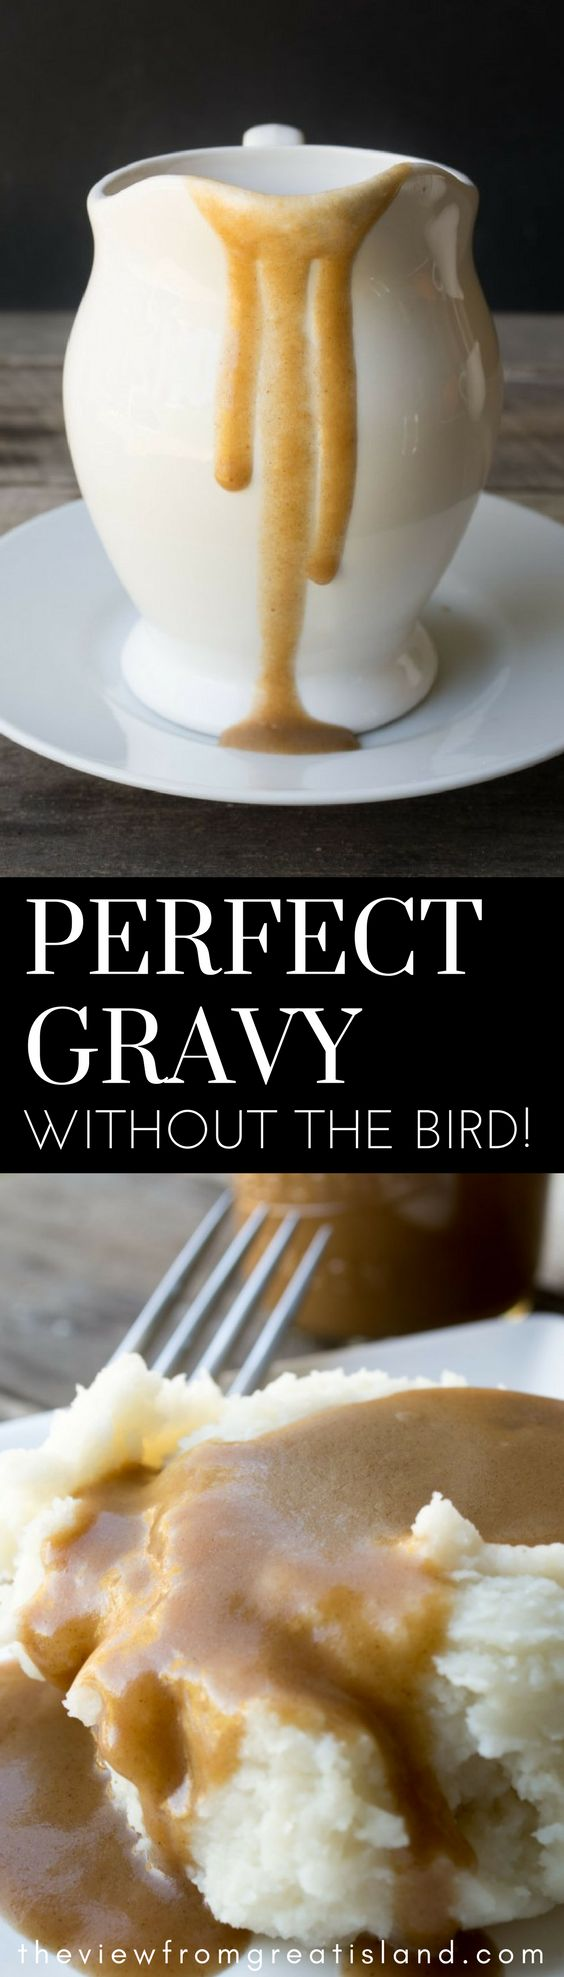 Perfect Gravy Without the Bird ~ an easy no drippings gravy recipe that you can make without roasting an entire turkey! This quick browned flour gravy will be your new best friend for the holidays and weeknight dinners all year long. #gravy #bestgravy #Th